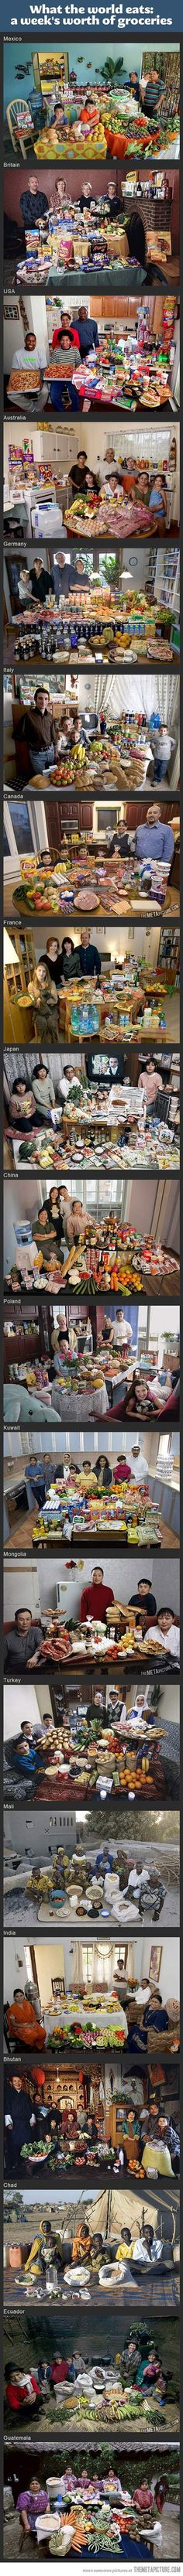 Lo mejor siempre es lo que uno come: A Weeks Worth of Groceries from Around the World | Little White LionLittle White Lion